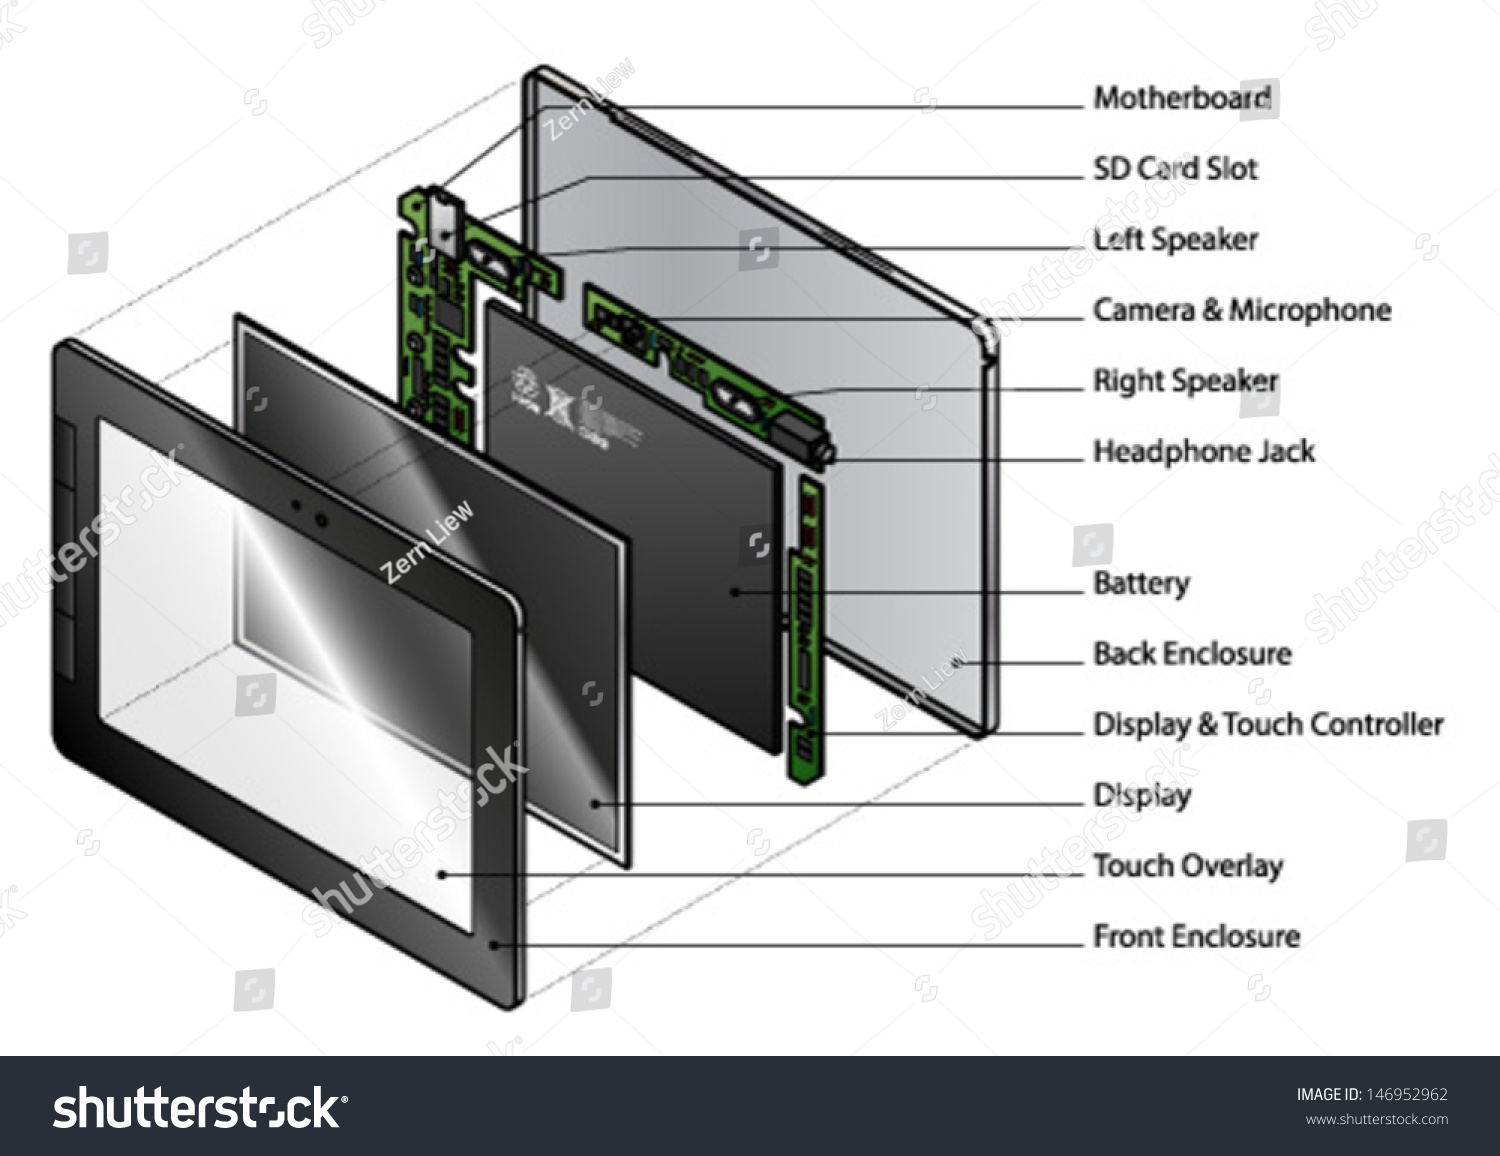 Motherboard Diagram With Labels on lung diagram with labels, medieval castle diagram with labels, sound card diagram with labels, motherboard schematic diagram, skull diagram with labels, motherboard layout with labels, intel motherboard with labels, motherboard diagram without labels, animal cell diagram with labels, charger diagram with labels, gigabyte motherboard with labels, human spine diagram with labels, sata diagram with labels, volcano diagram with labels, wave diagram with labels, motherboard slots diagram, port diagram with labels, computer diagram with labels, motherboard poster with labels, atx diagram with labels,